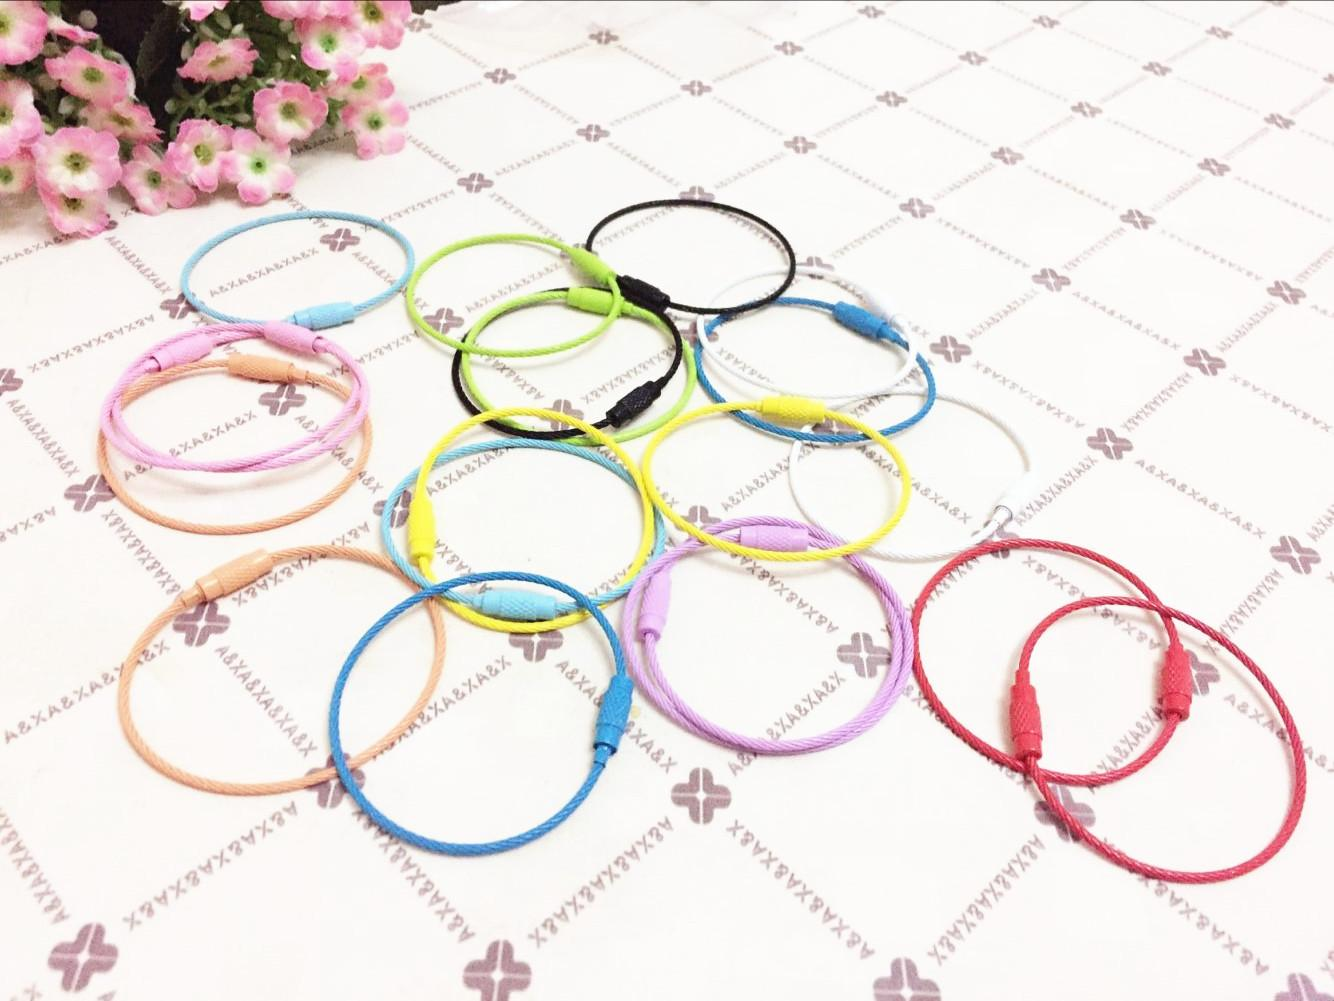 Candy color key lock ring ring toy2r paint color stainless steel wire hoop / key ring steel